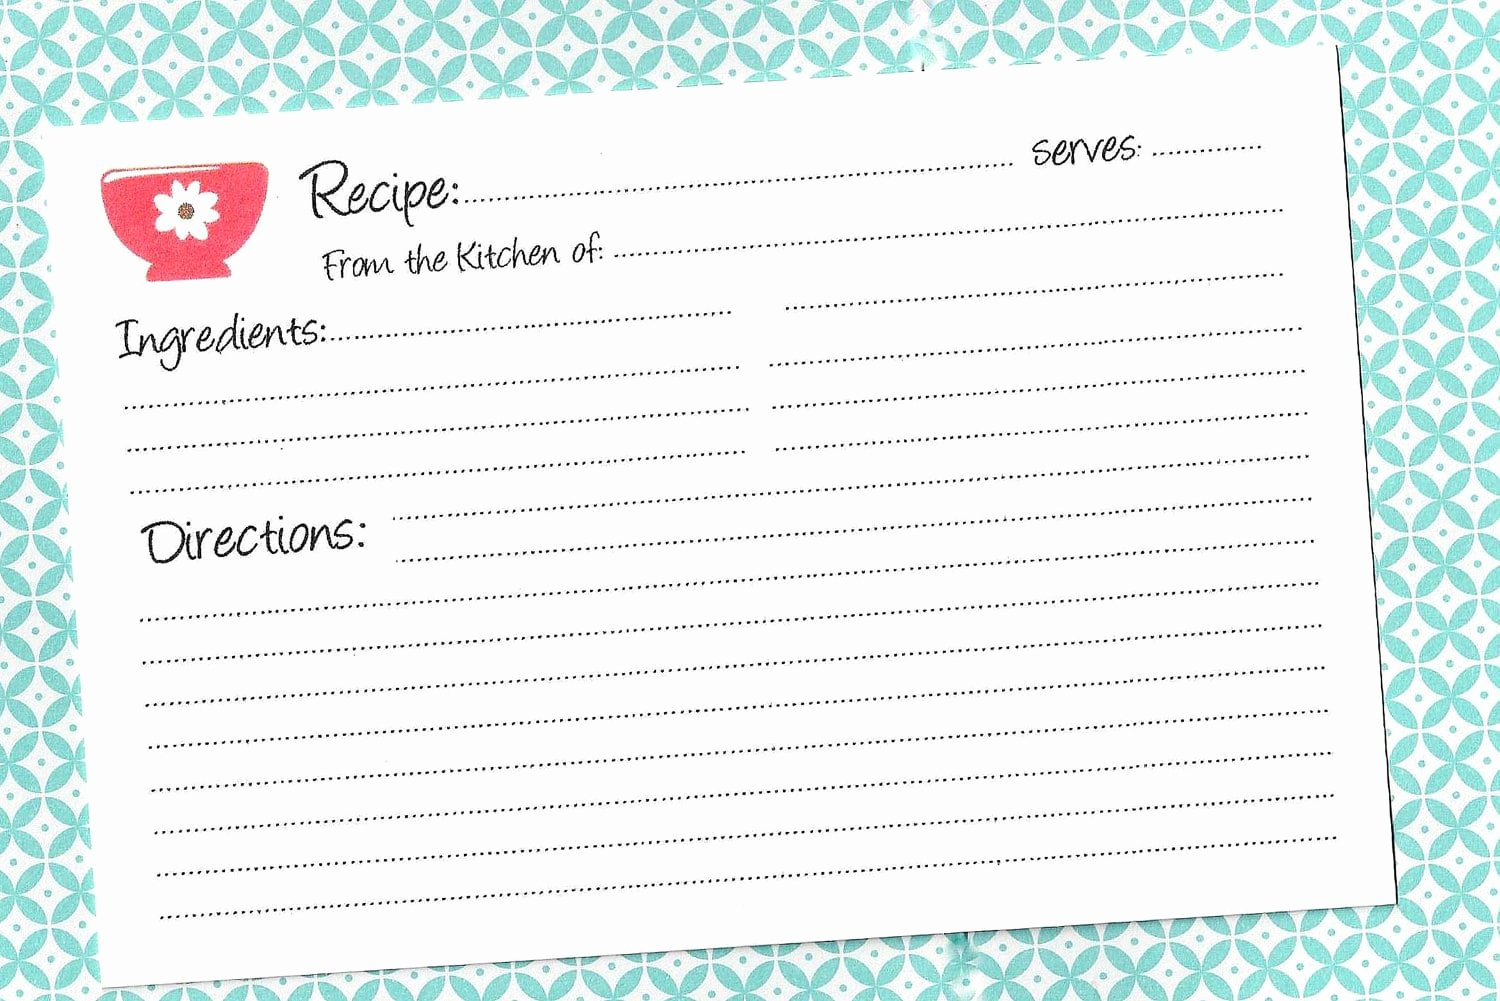 Recipe Cost Card Template Elegant Recipe Card Templates Find Word Templates